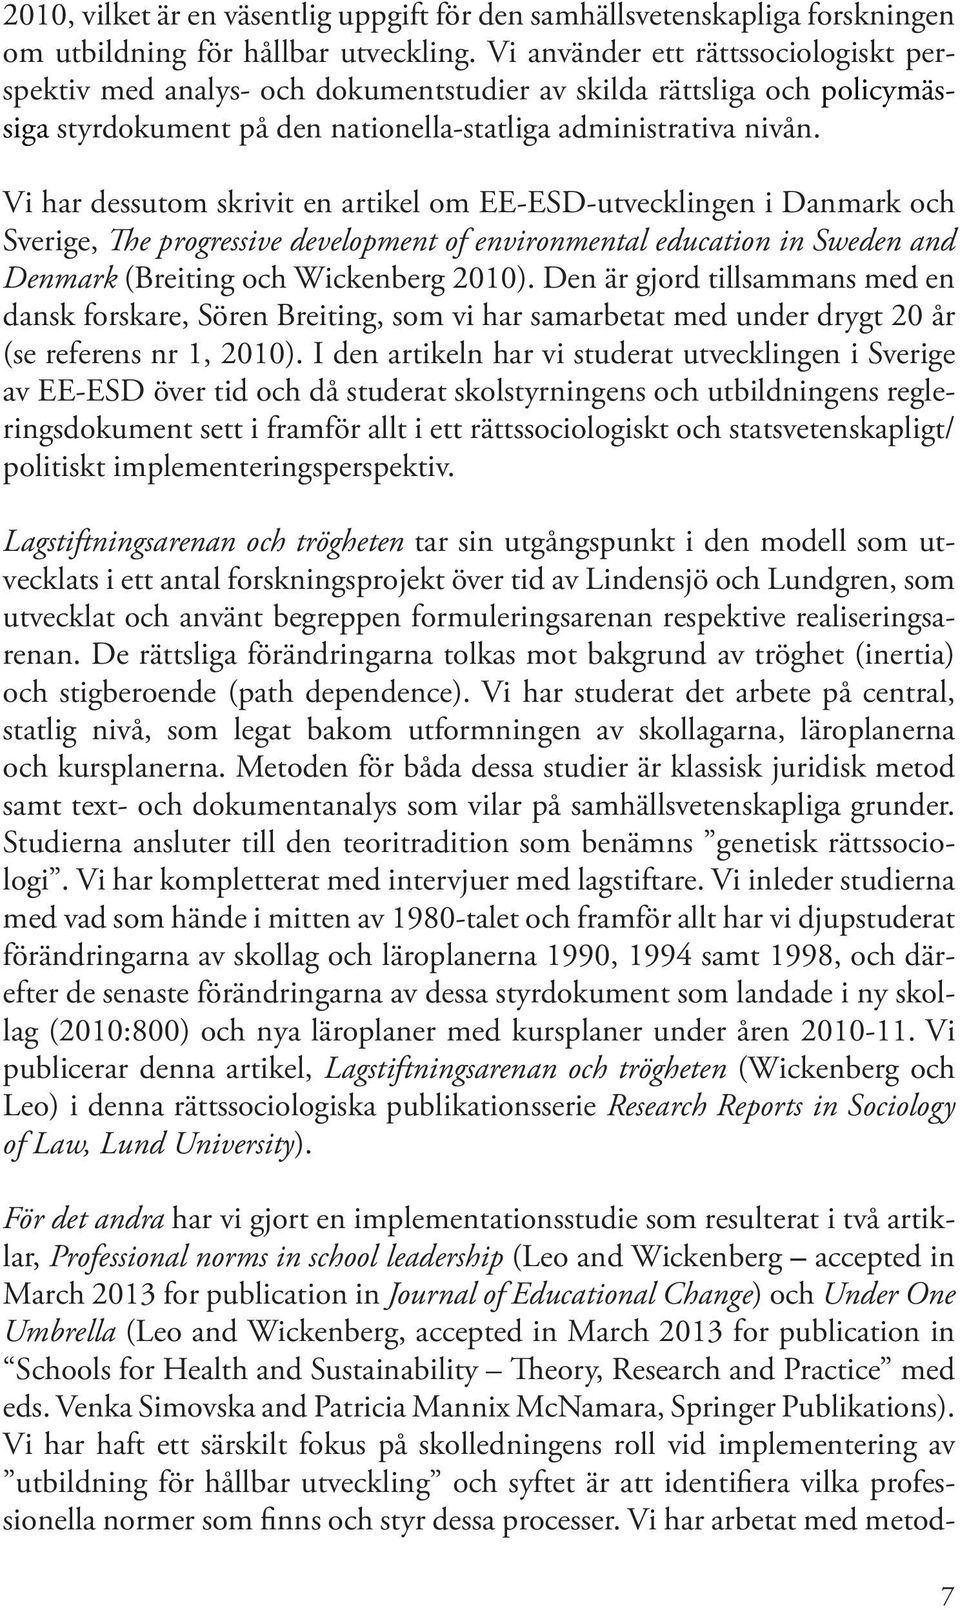 Vi har dessutom skrivit en artikel om EE-ESD-utvecklingen i Danmark och Sverige, The progressive development of environmental education in Sweden and Denmark (Breiting och Wickenberg 2010).